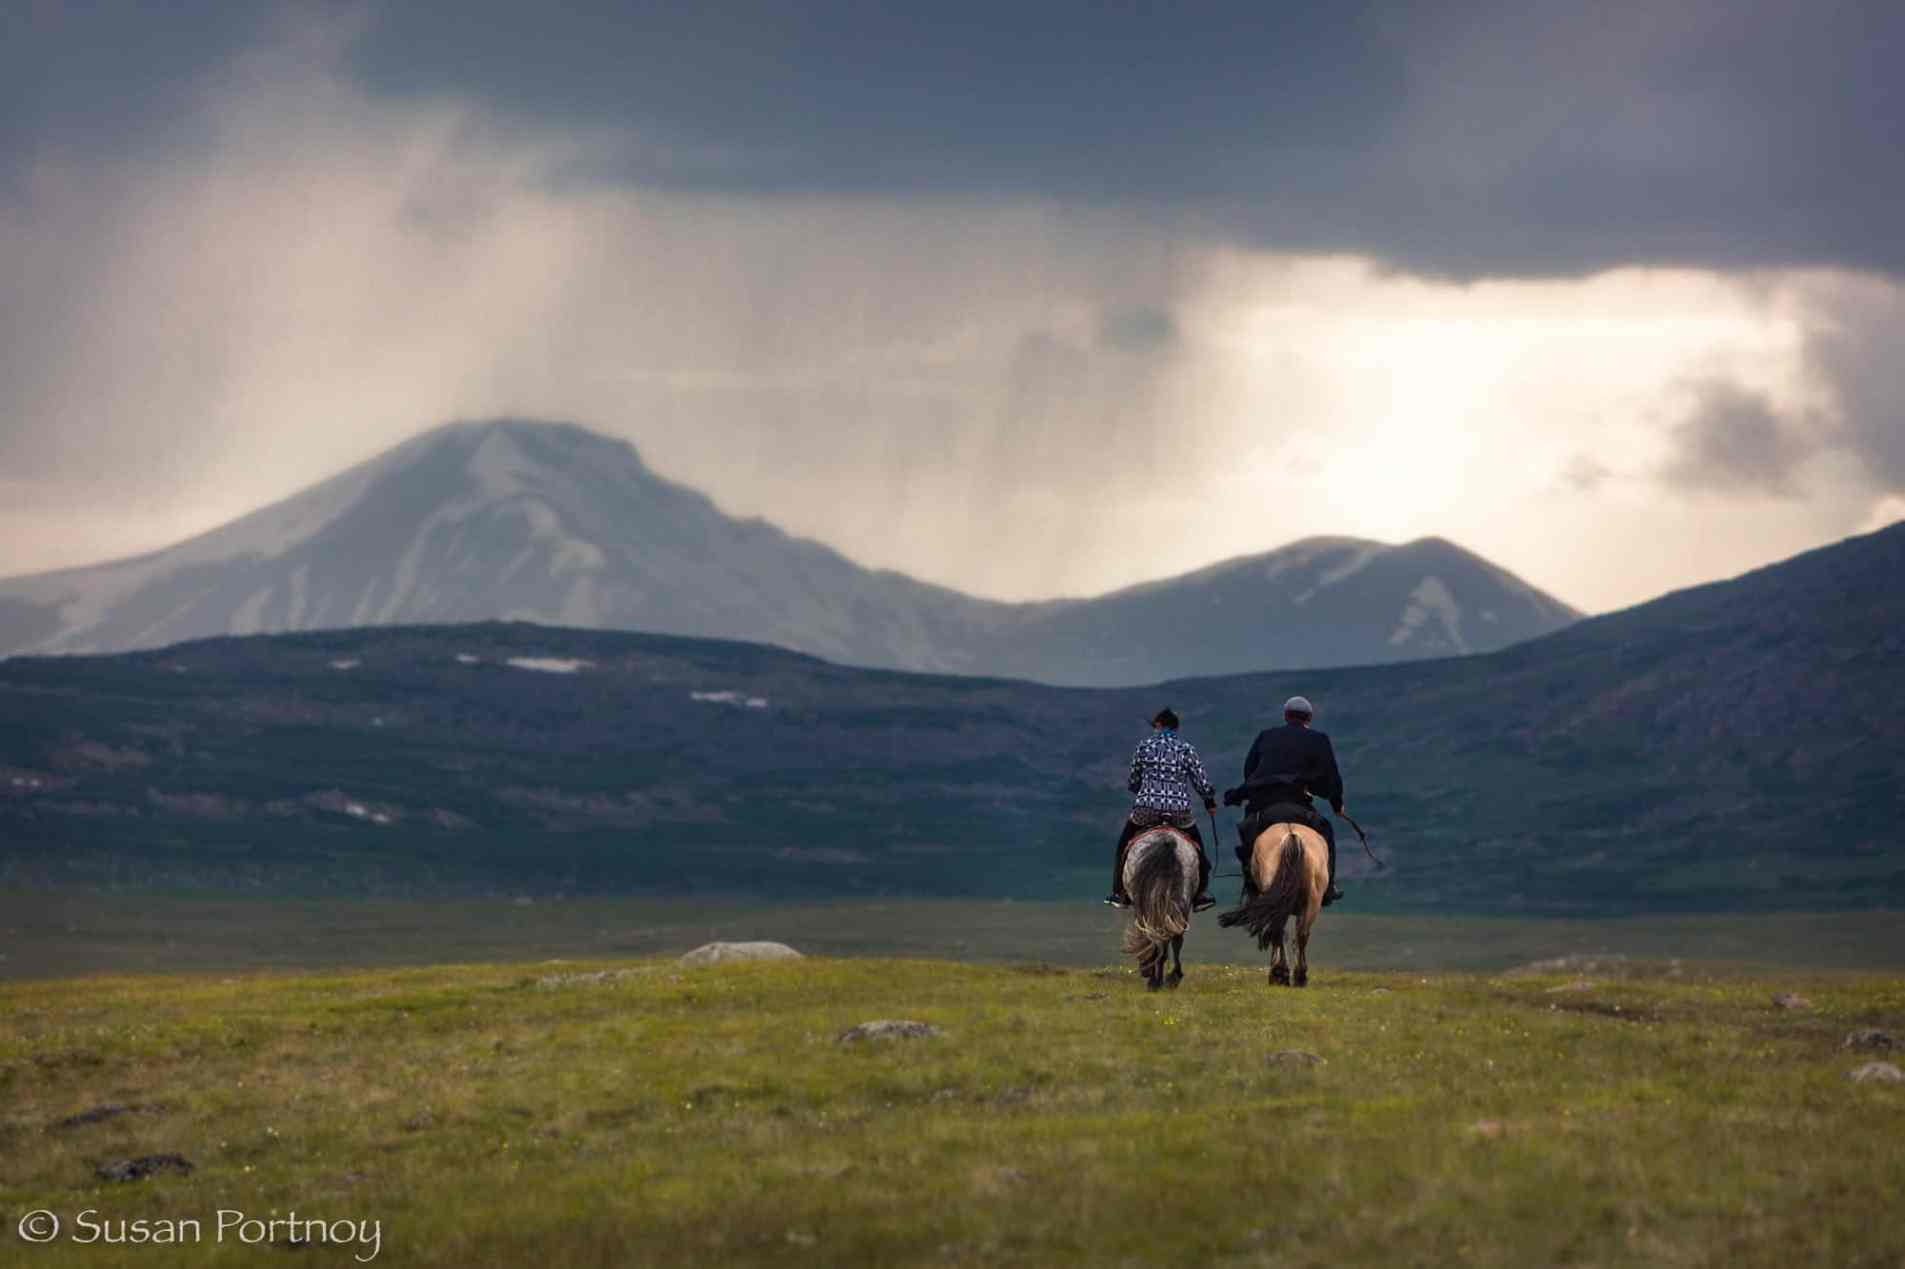 Two Kazaks riding horses in the mountains of theAltai Tavan Bogd National Park, Mongolia